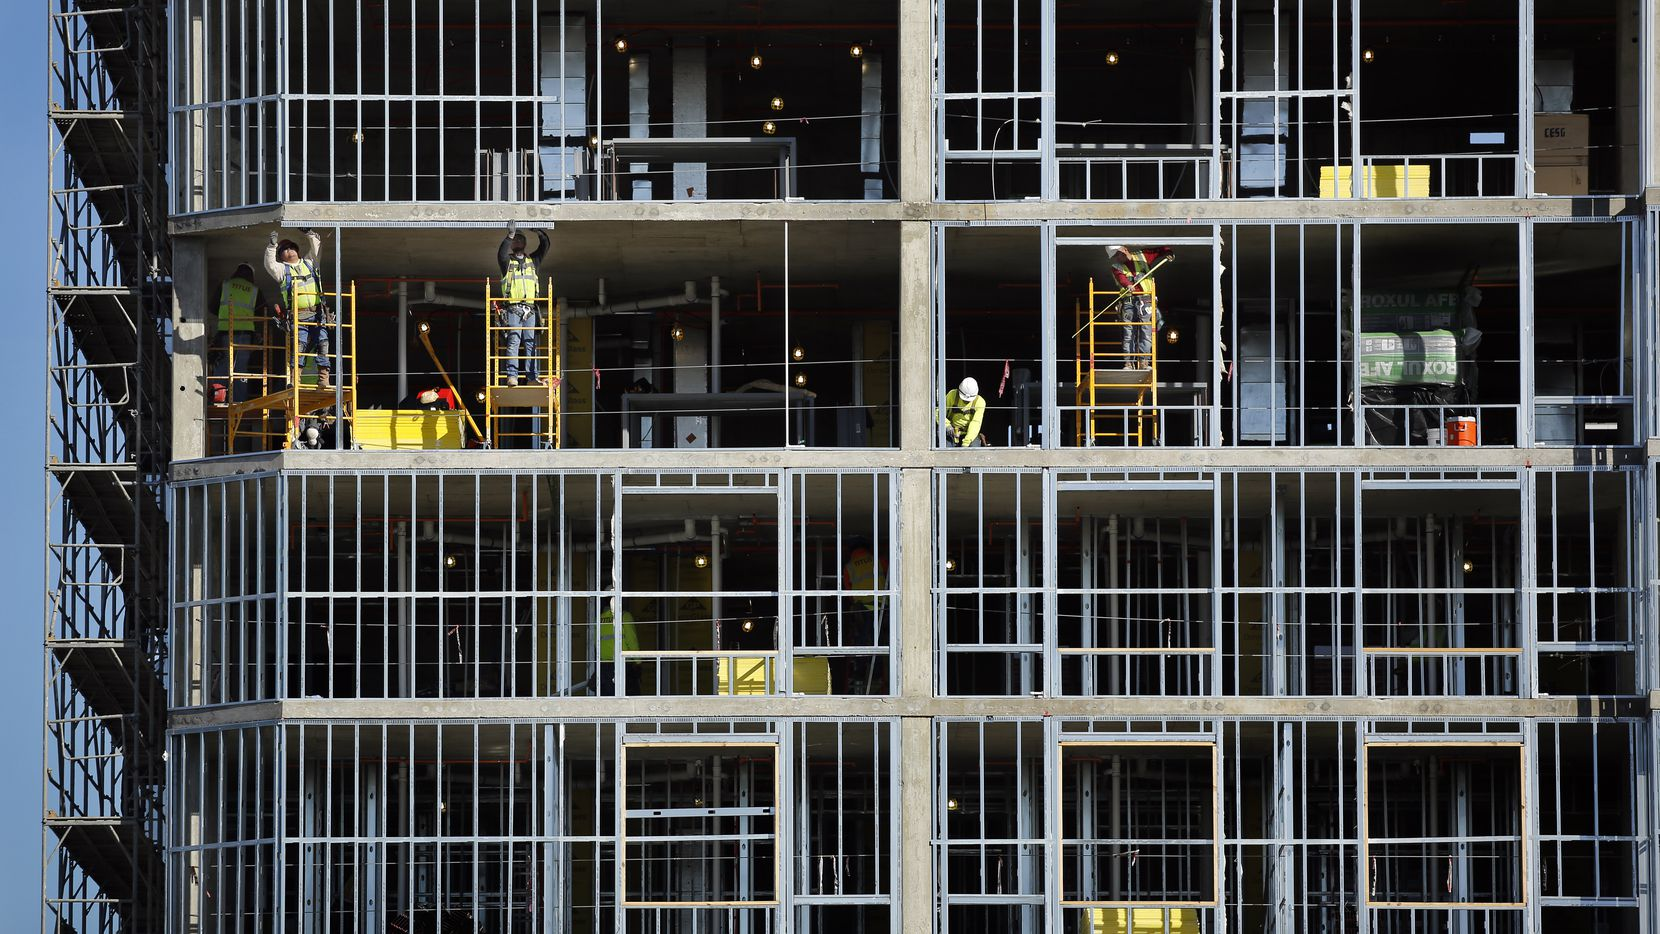 More than 35,000 apartments are being built in North Texas.